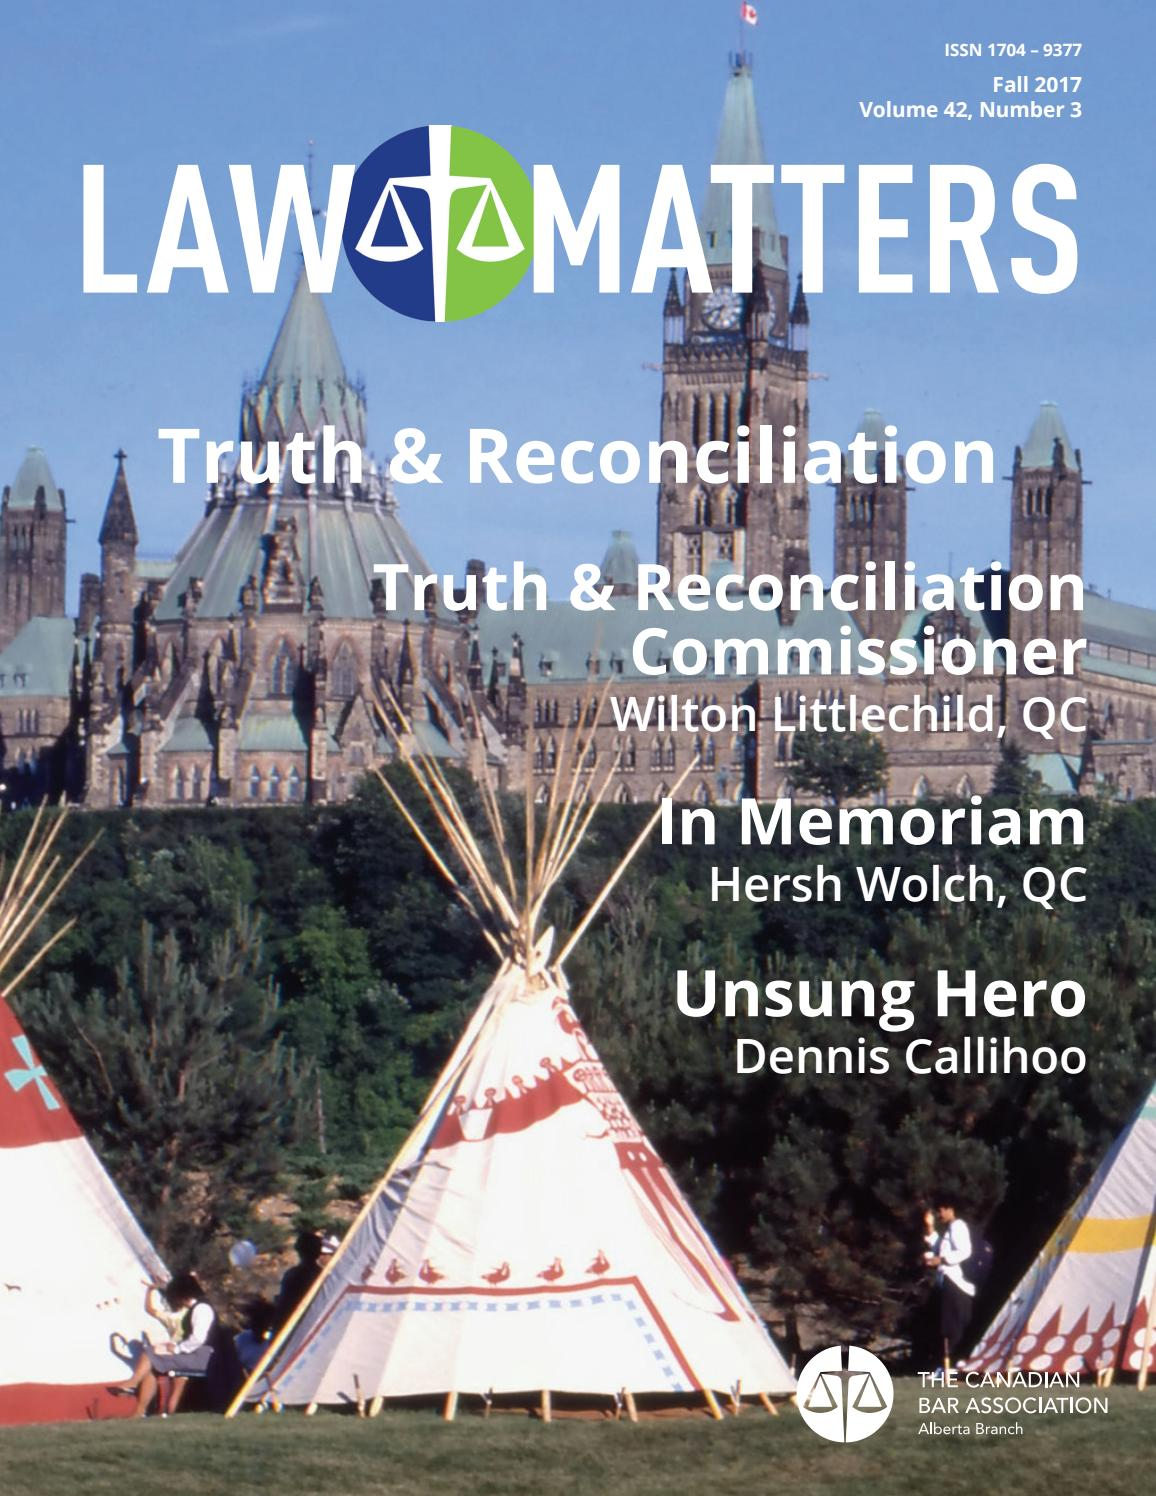 Law Matters | Fall 2017 by Canadian Bar Association, Alberta Branch - issuu